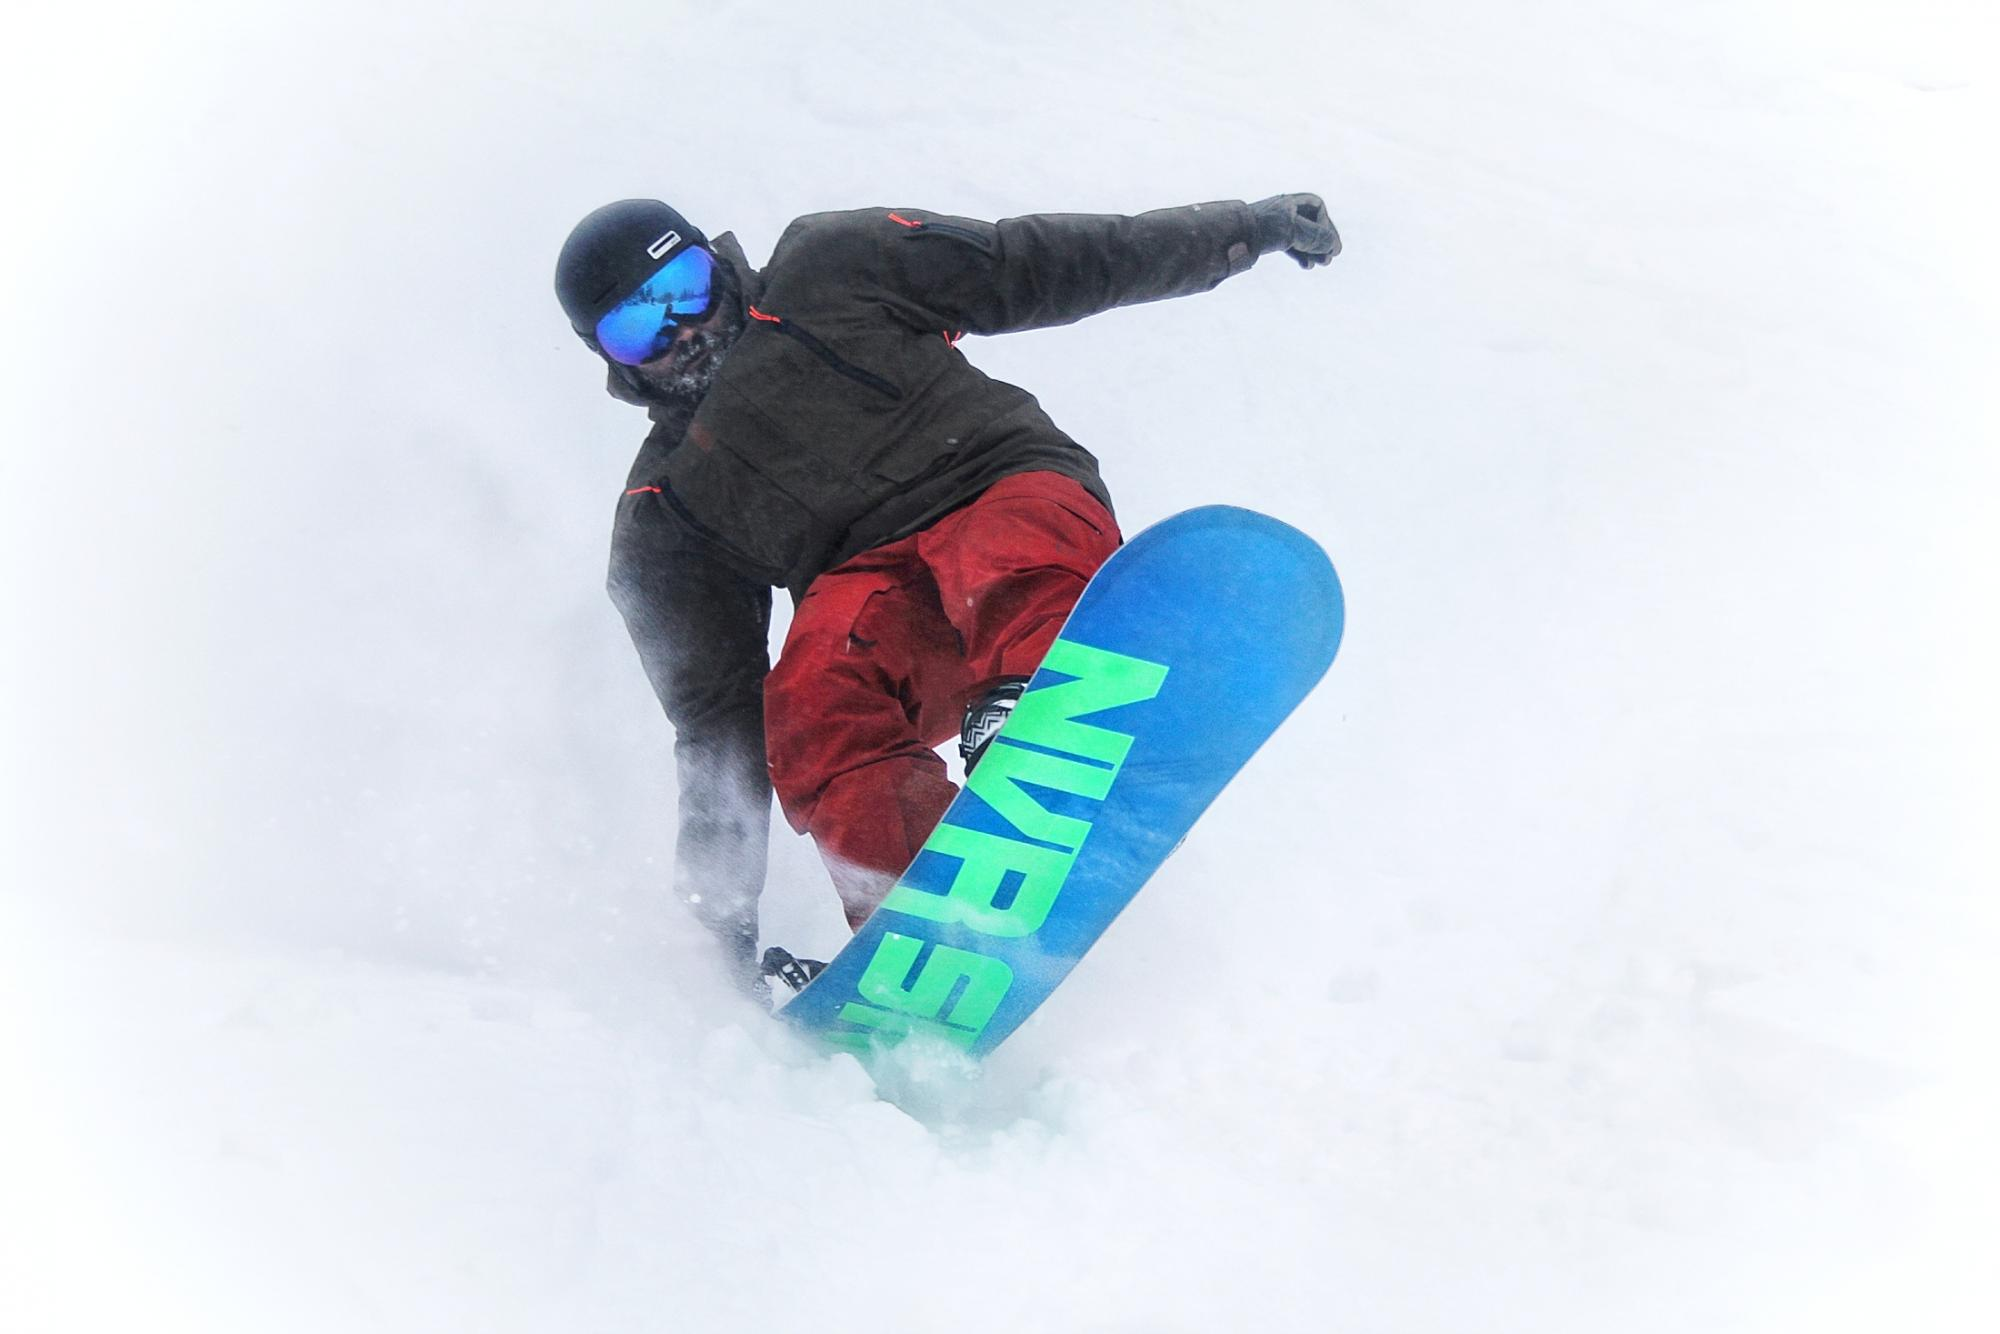 Snowboarding at Hudson Bay Mountain